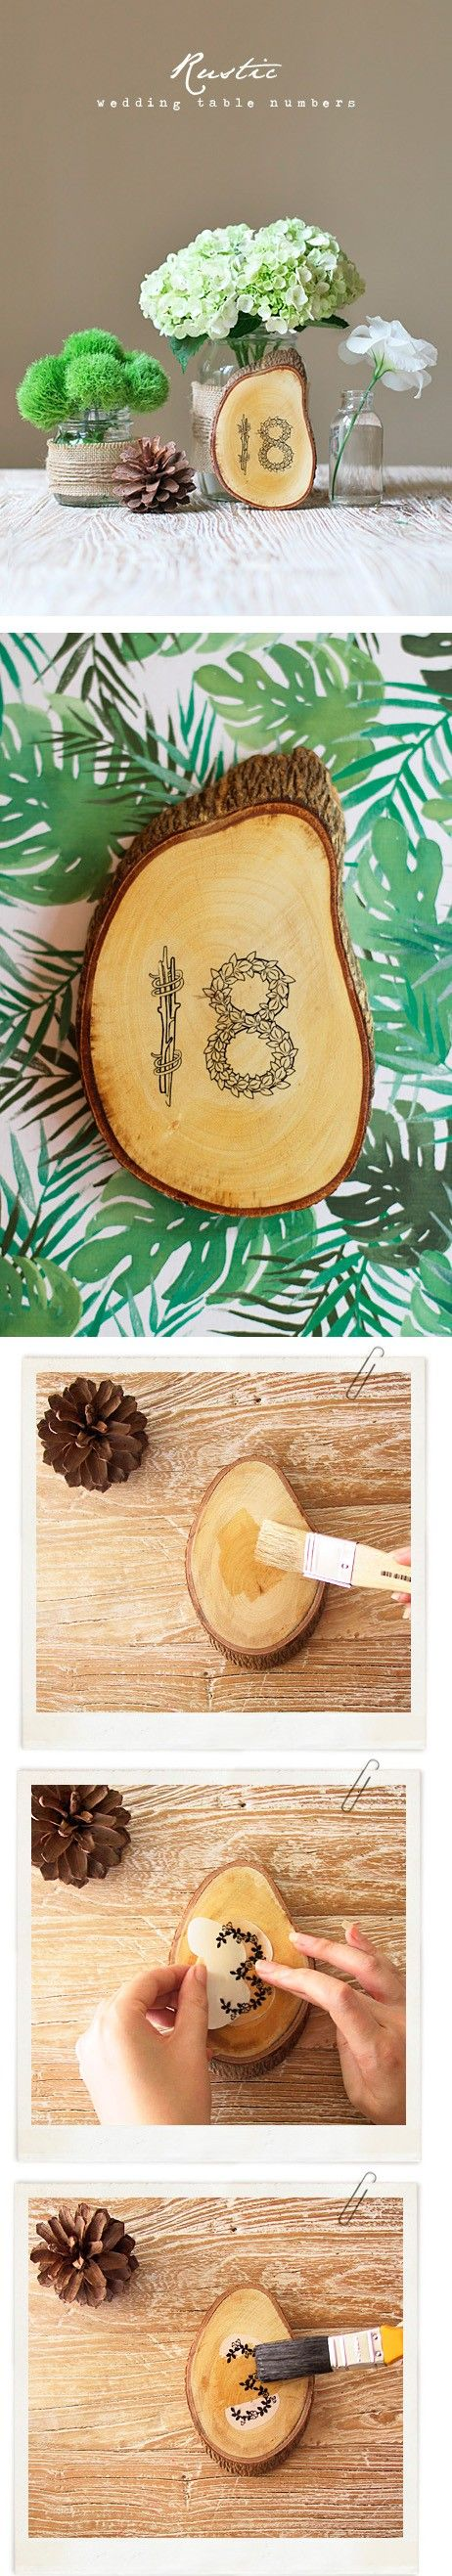 DIY Rustic wood slice table numbers #wedding #decorations